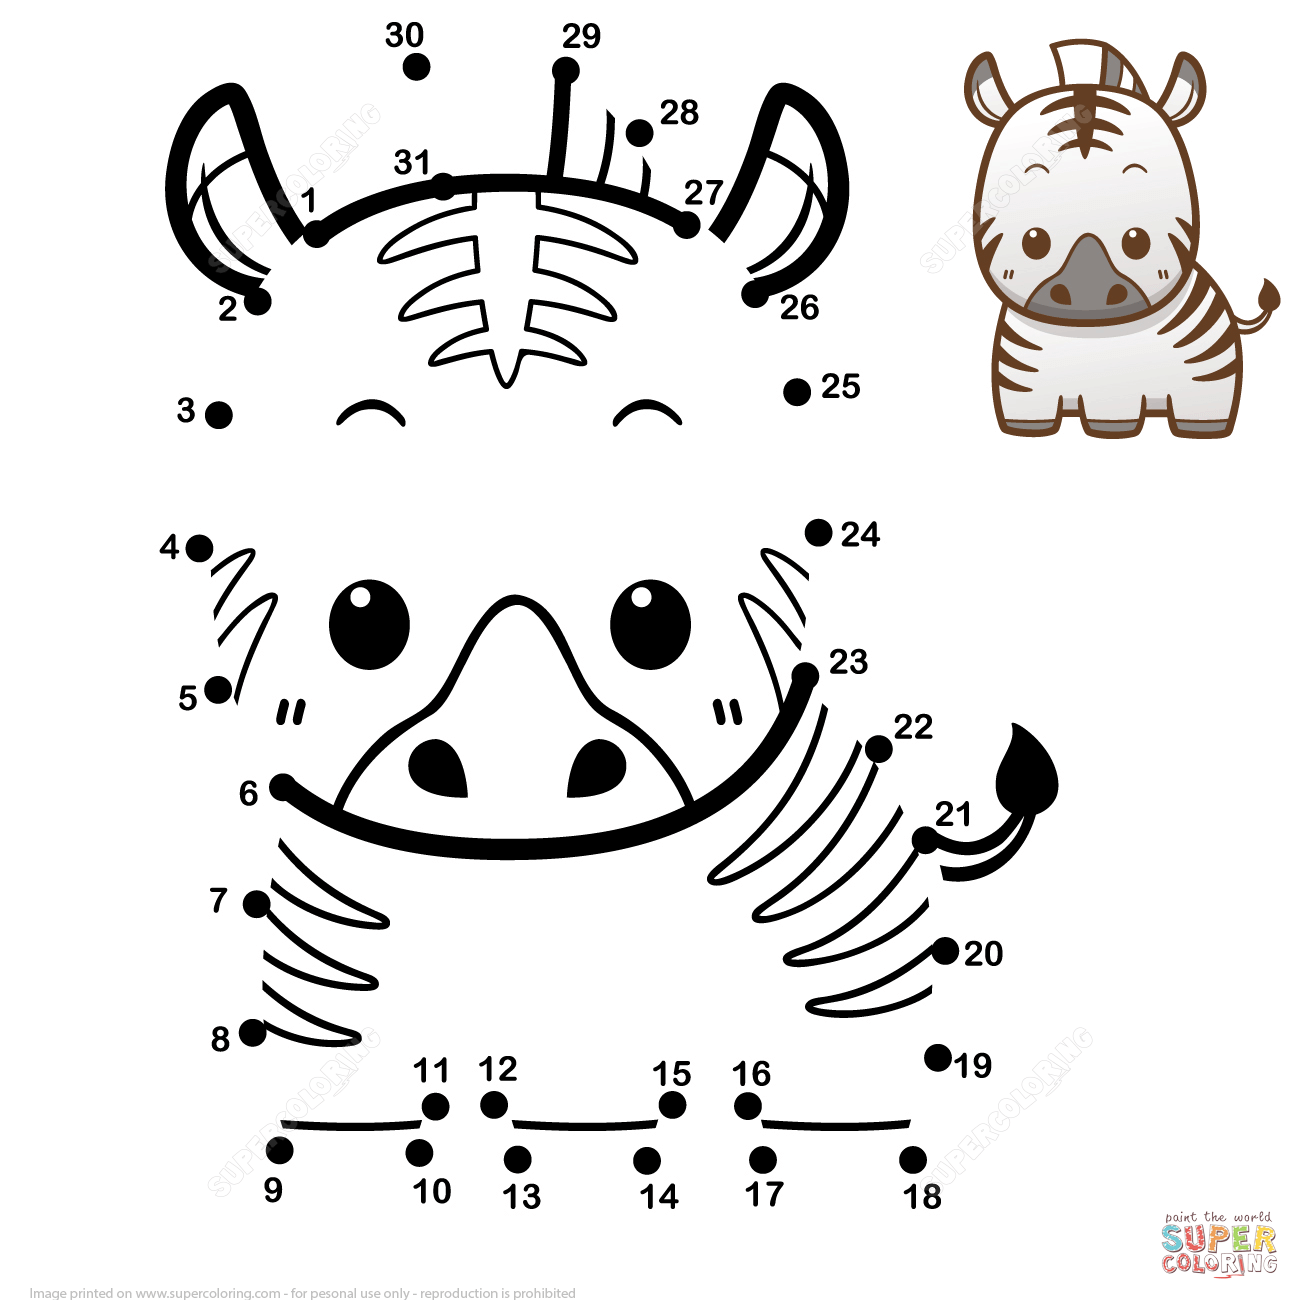 Cute Baby Zebra Dot To Dot Free Printable Coloring Pages